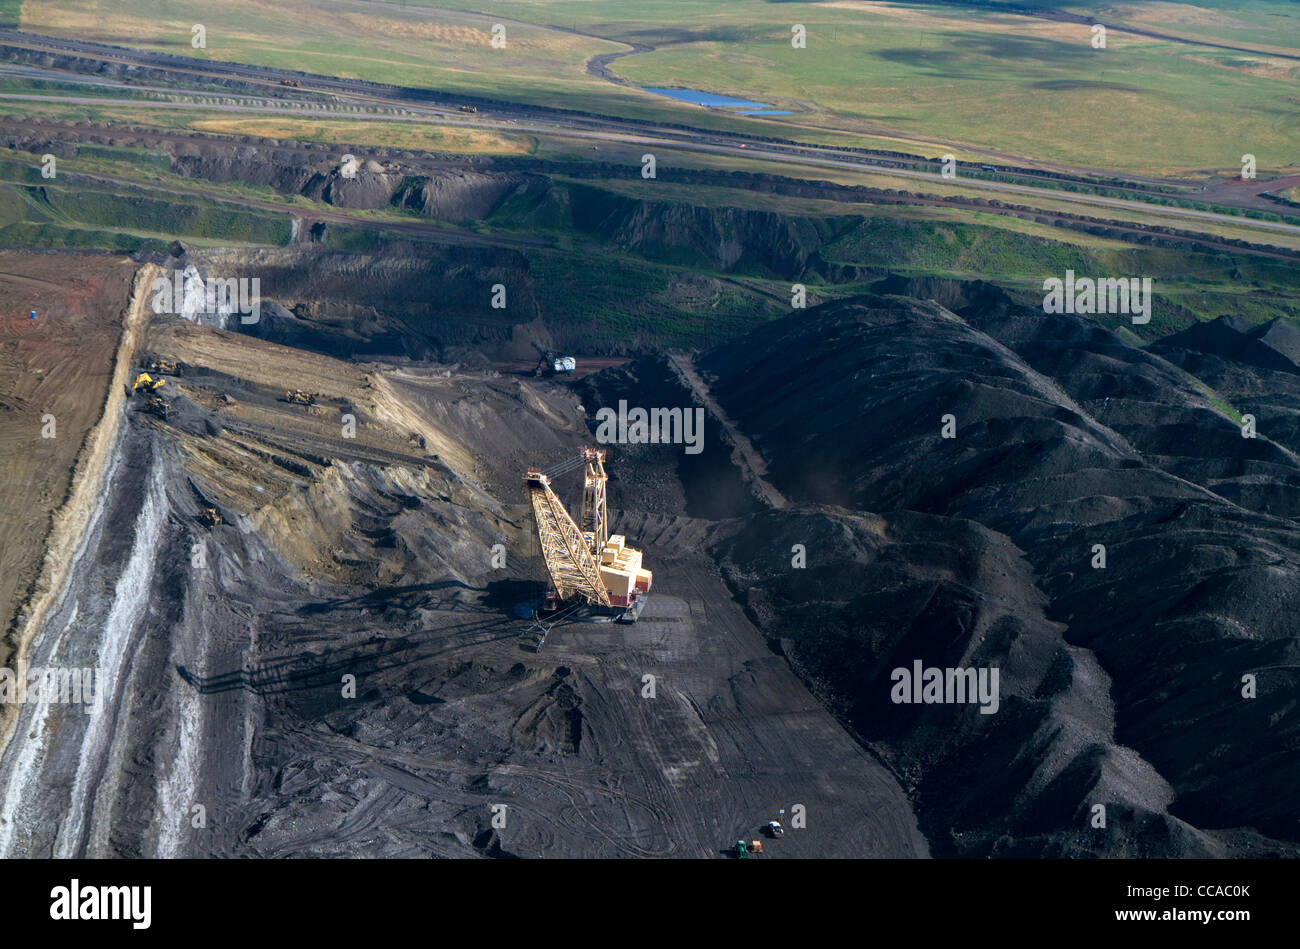 Aerial view of a dragline being used in the process of coal surface mining in Campbell County, Wyoming, USA. Stock Photo